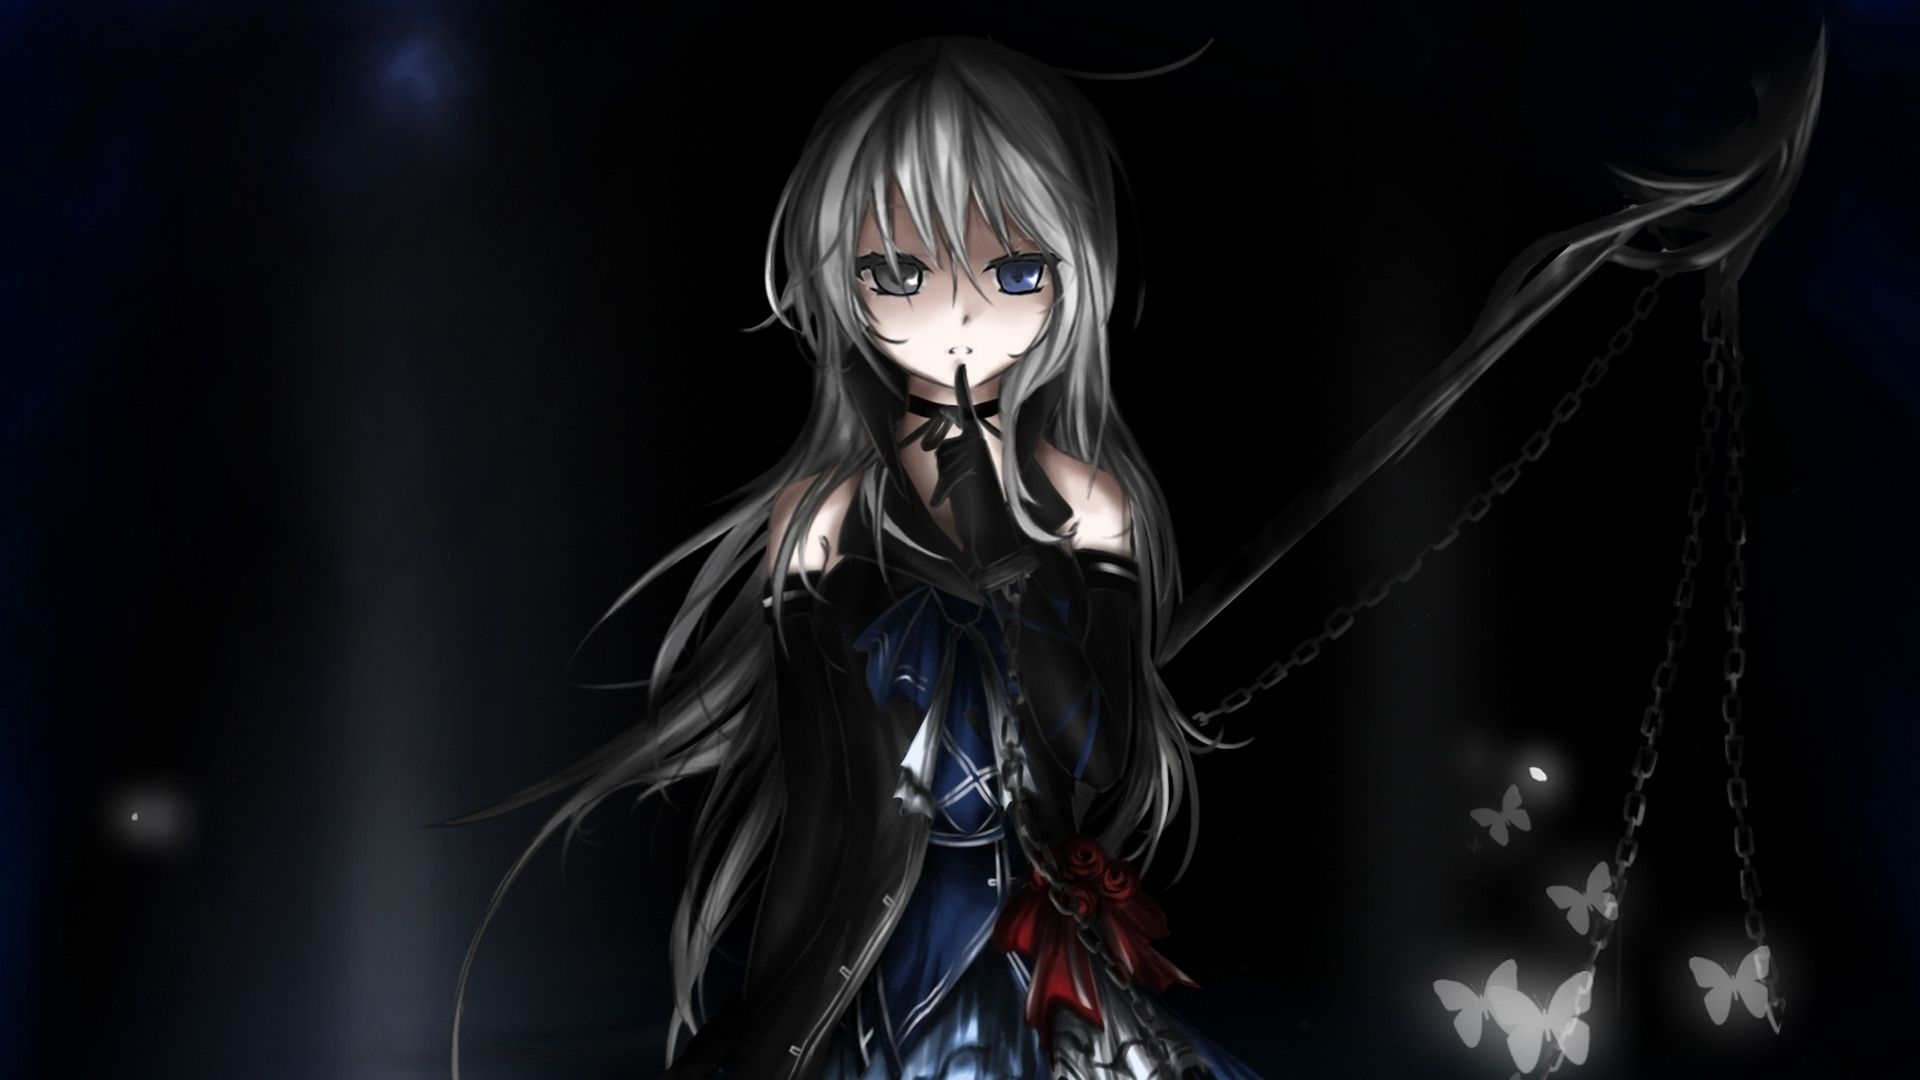 1920x1200 dark anime girl walldevil